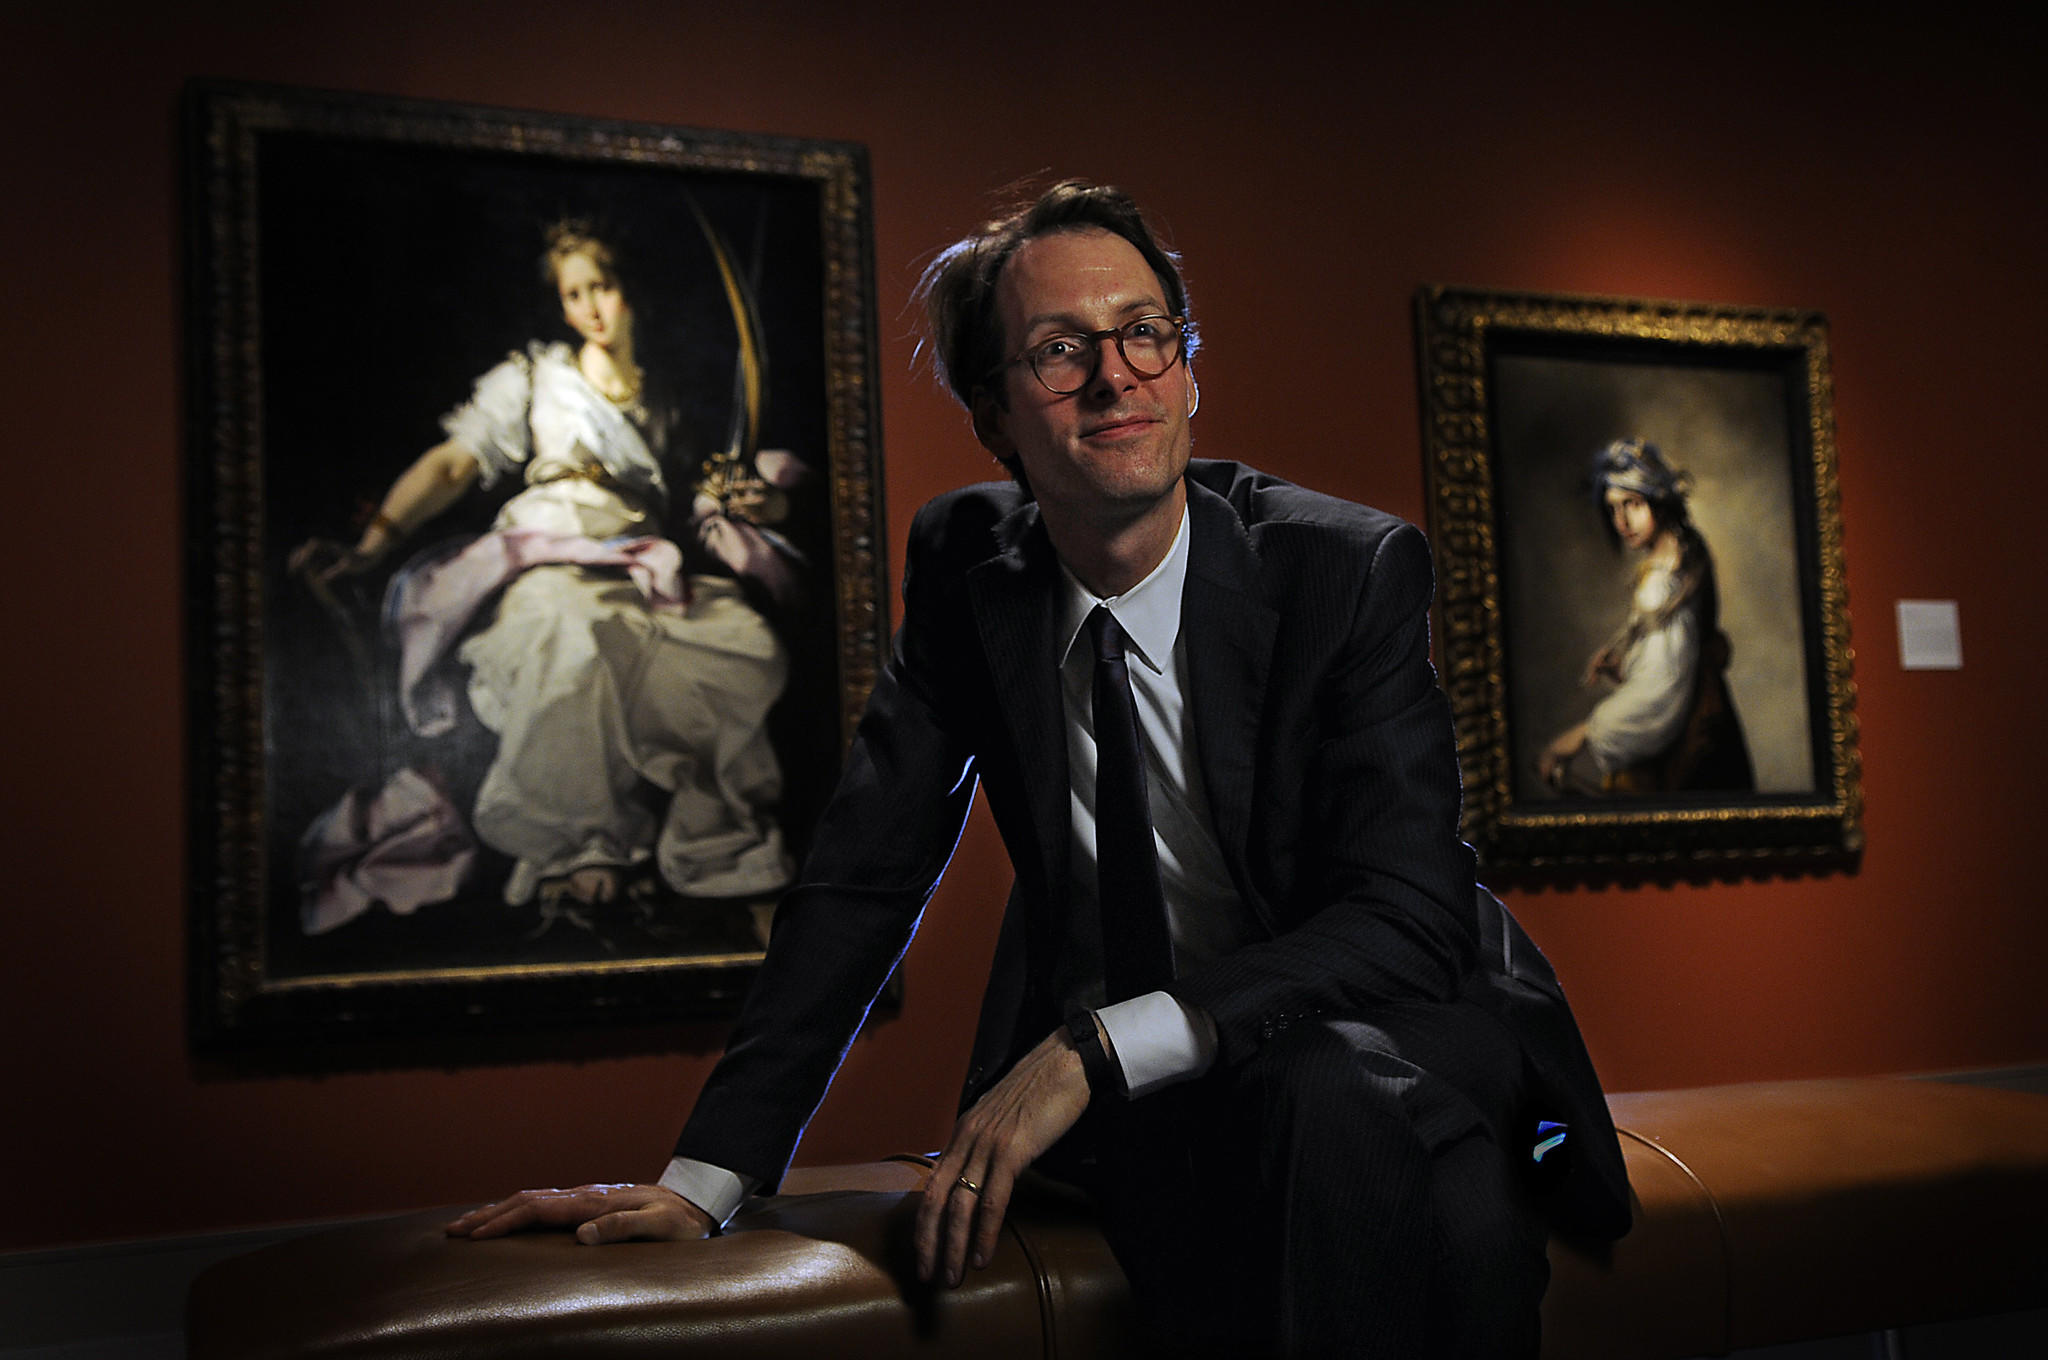 Oliver Tostmann is the new Fine European arts curator at the Wadsworth Atheneum. Tostmann is seated between Bernardo Strozzi's Saint Catherine of Alexandria, 1615, and Salvator Rosa's Lucrezia As Poetry, 1641.